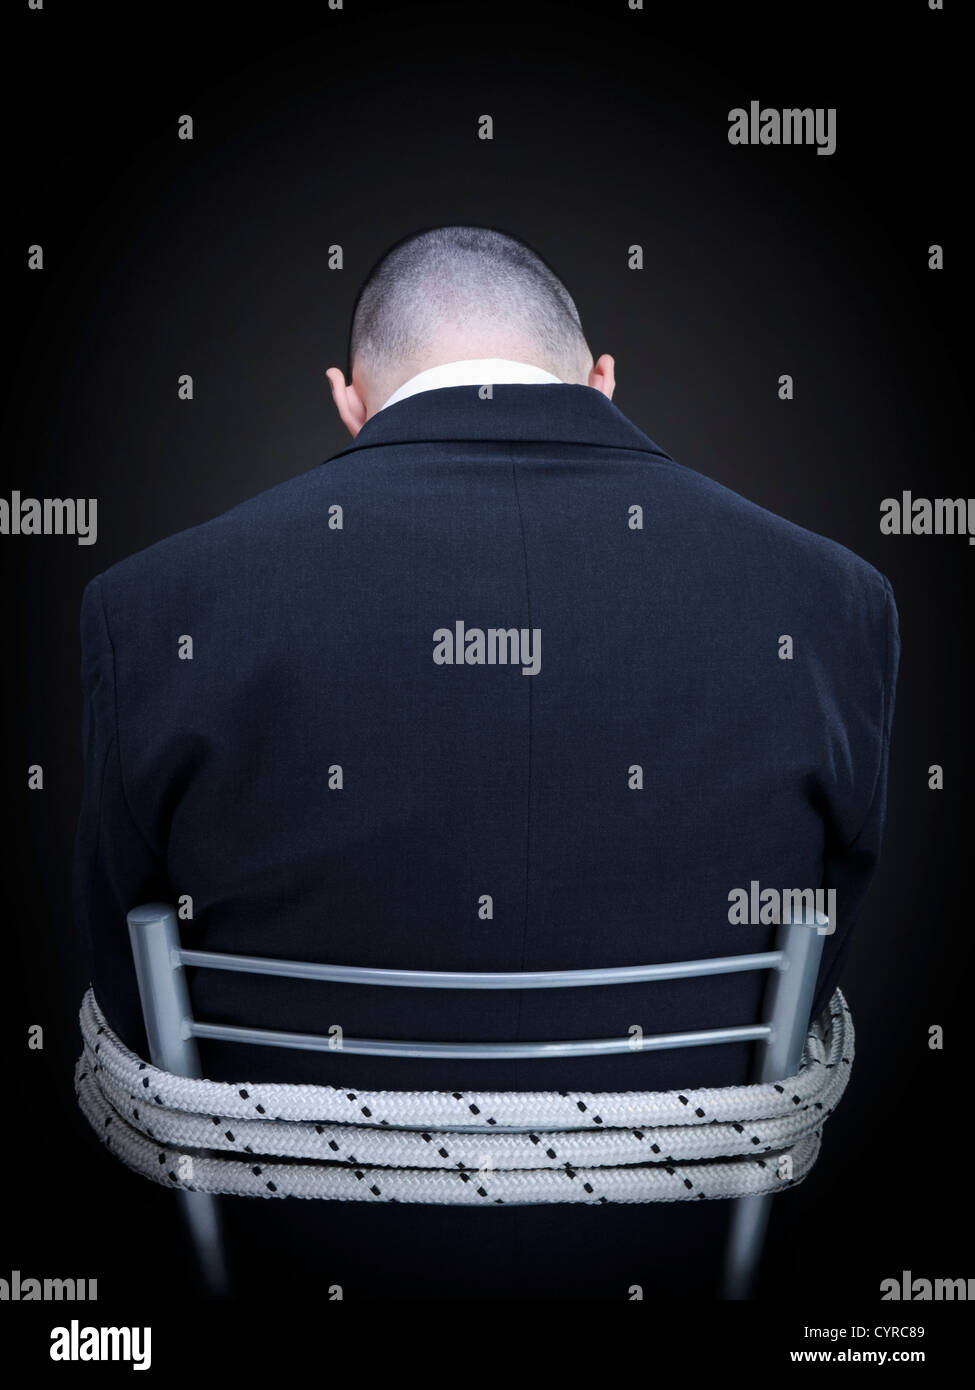 A businessman is tied up on a chair turning his back to the camera. - Stock Image